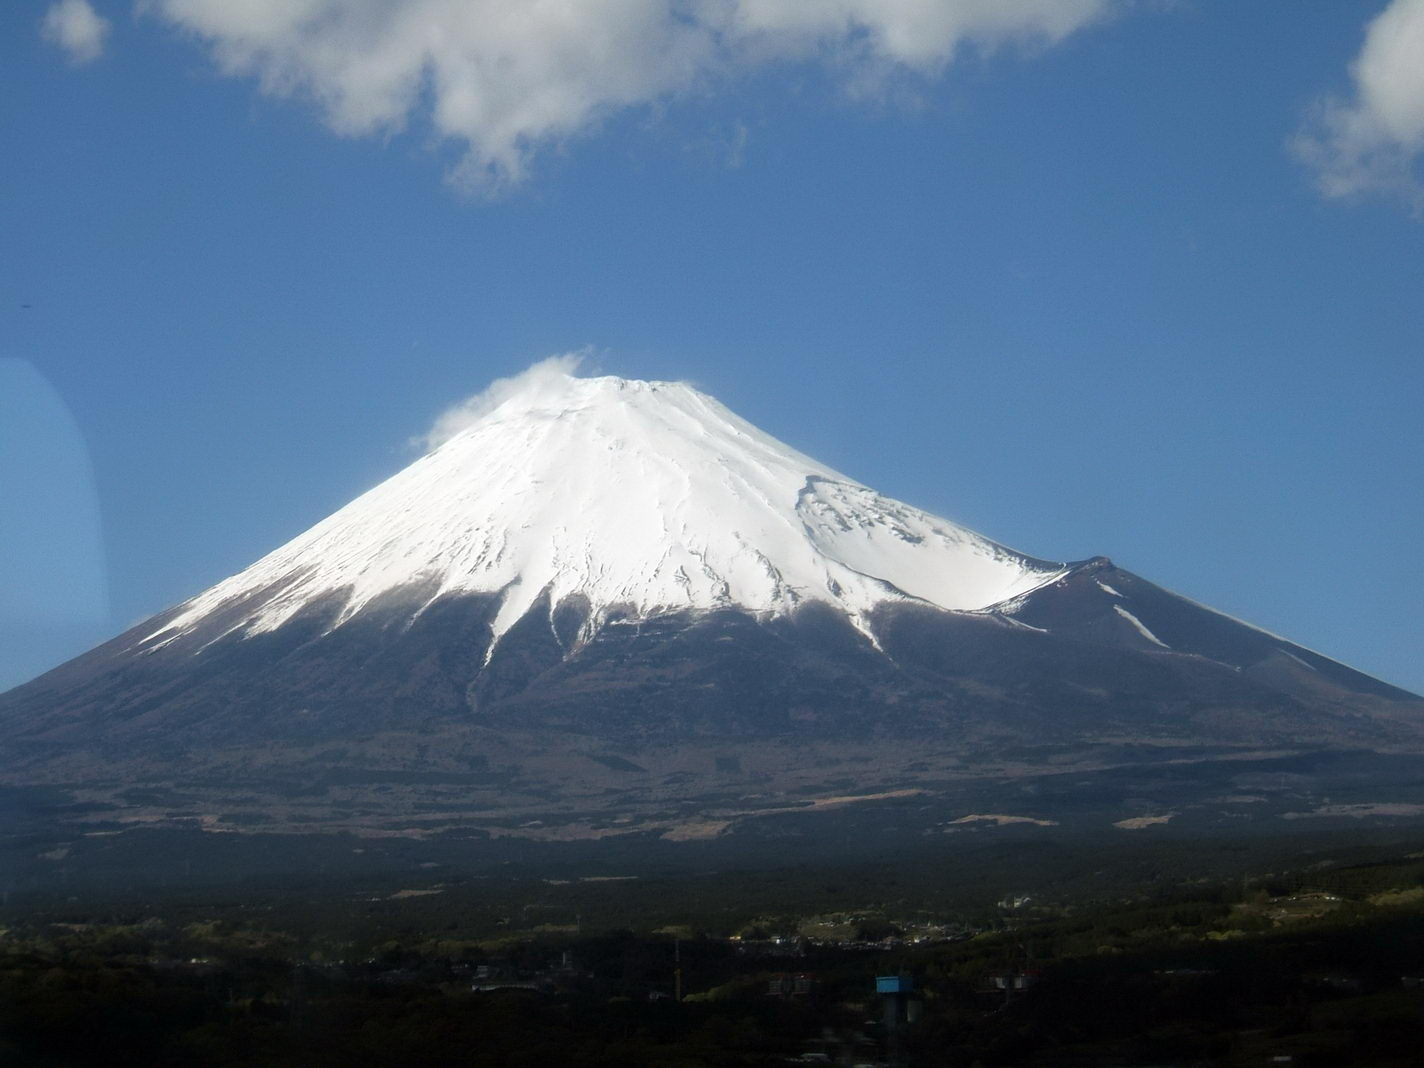 mount fuji mount fuji facts for kids facts for kids